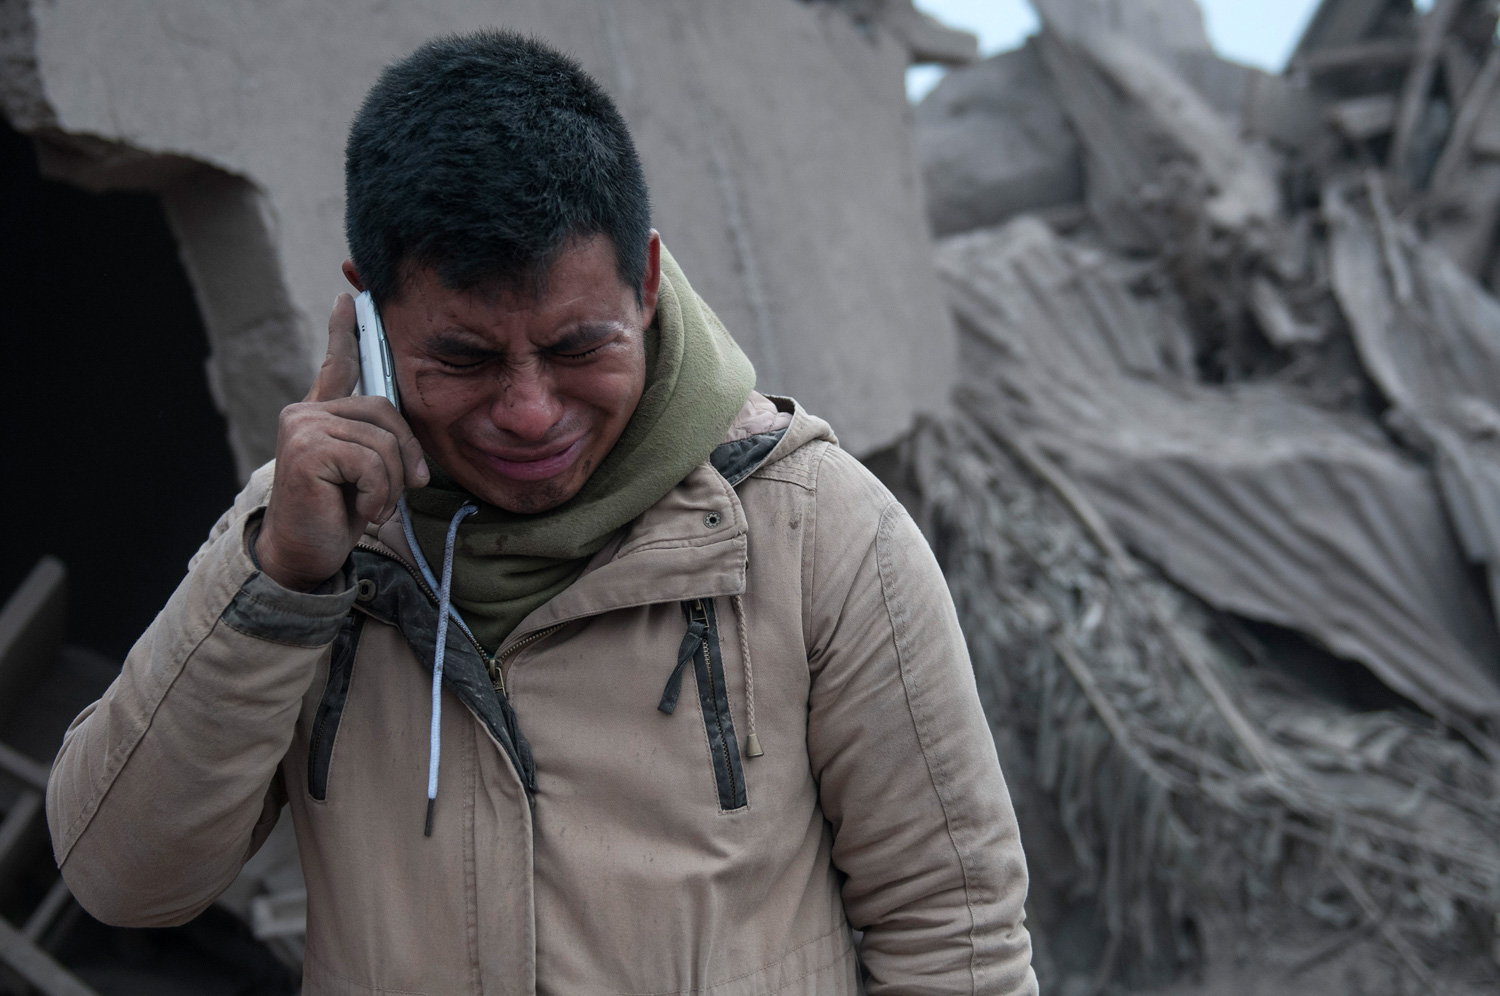 "<div class=""meta image-caption""><div class=""origin-logo origin-image none""><span>none</span></div><span class=""caption-text"">Boris Rodriguez, 24, who is searching for his wife, cries after seeing the condition of his neighborhood, destroyed by the erupting Volcan de Fuego in Guatemala, Monday, June 4. (Oliver de Ros/AP Photo)</span></div>"